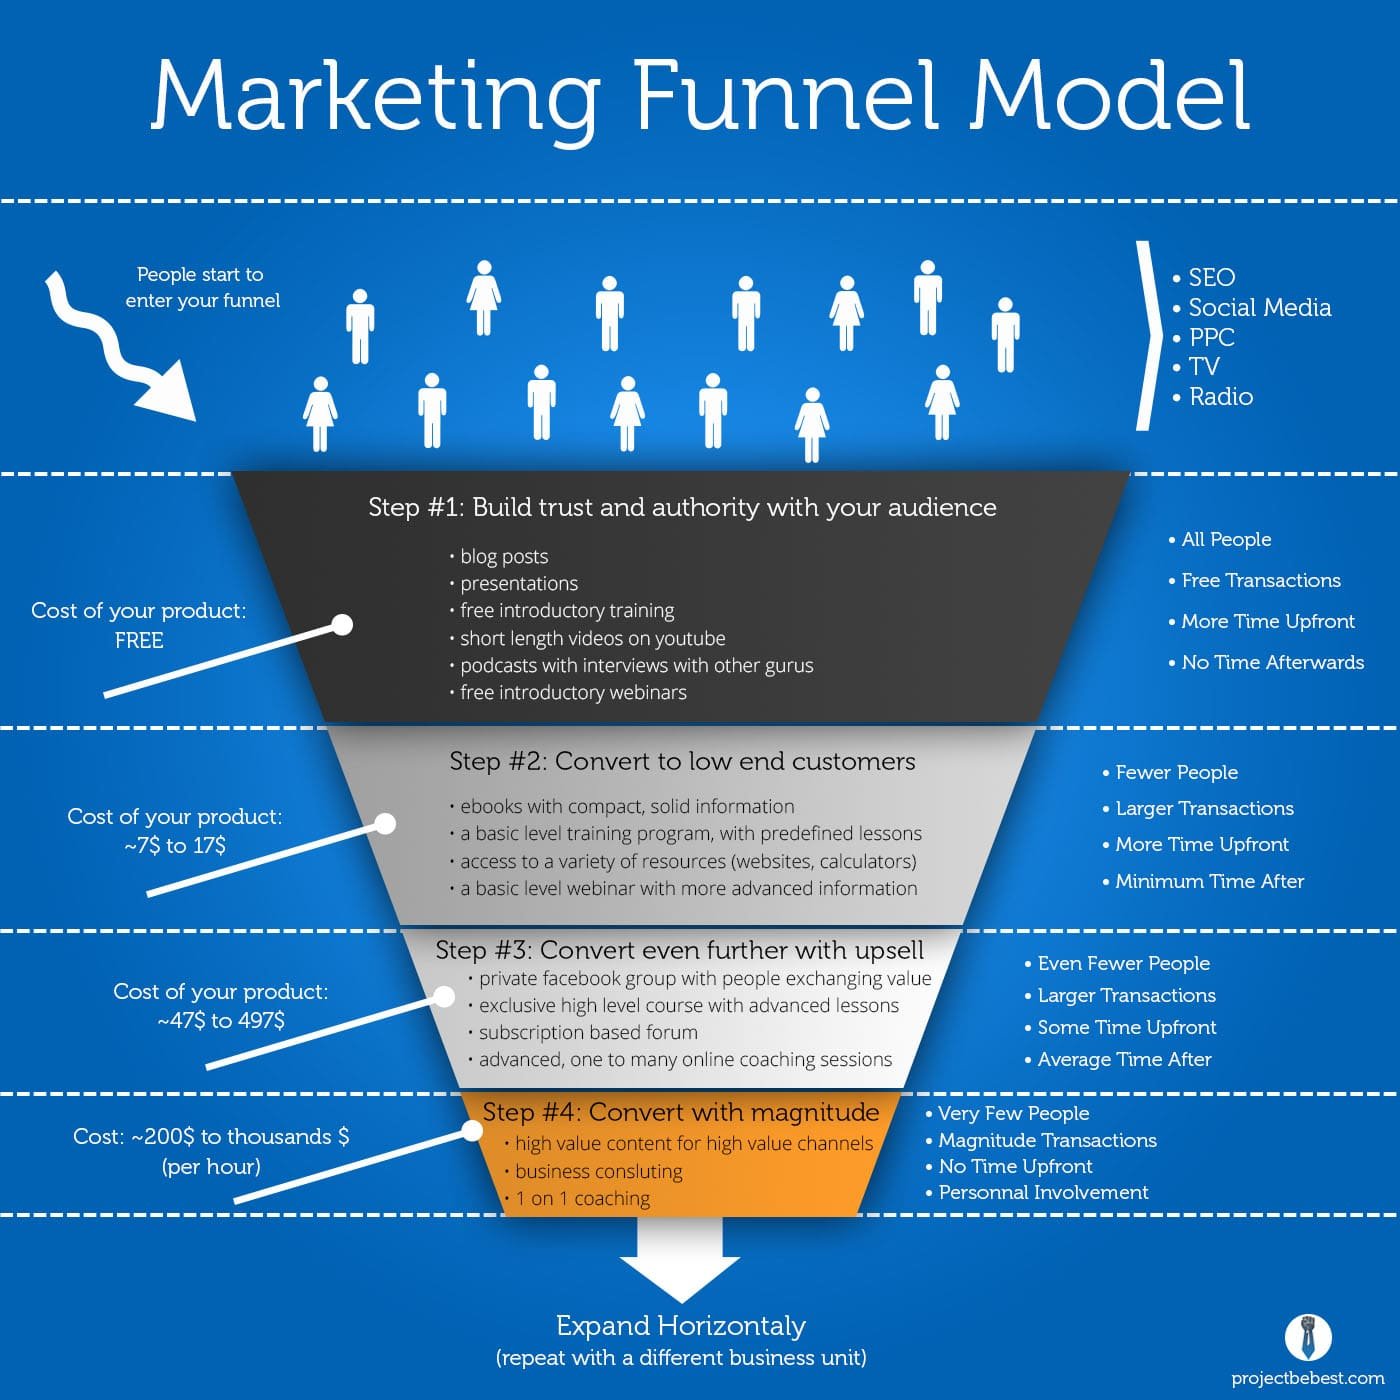 Marketing Funnel Infographic